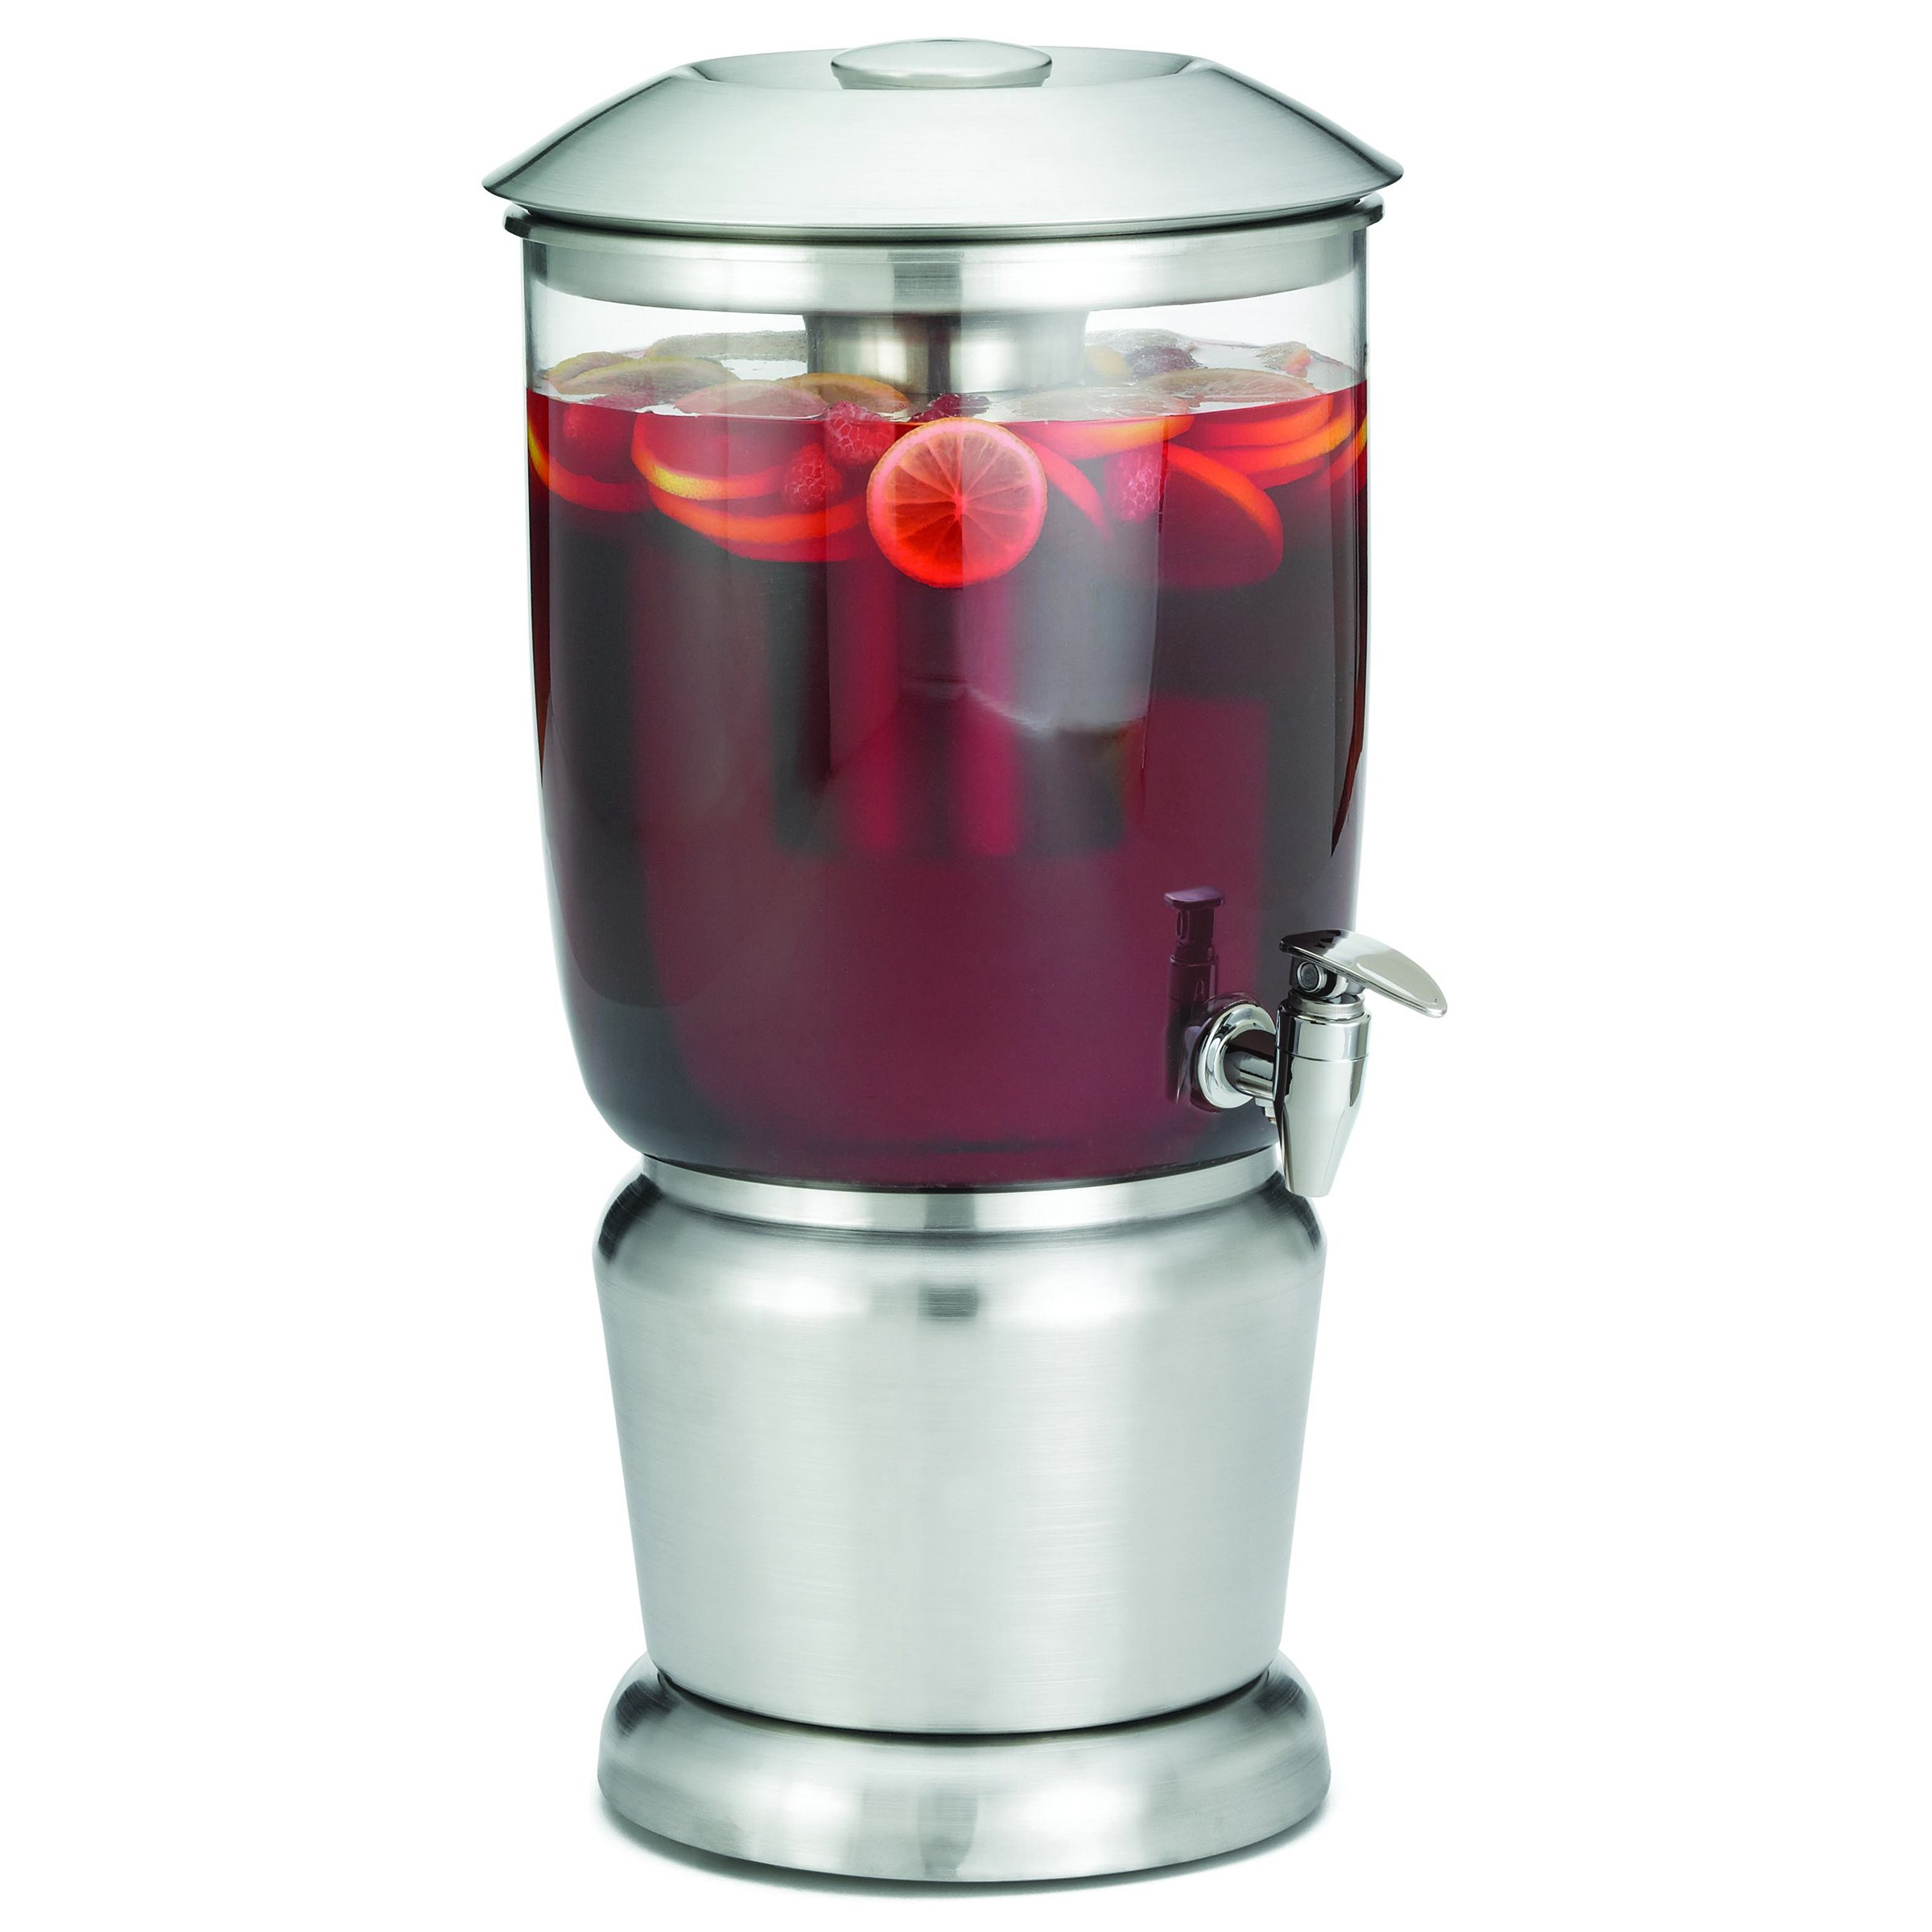 TableCraft 2.5 Gallon Drink Dispenser with Fruit Infuser & Stand | BPA Free | Tritan Stainless Steel | Cold Beverage Dispenser for Catering, Buffet or Home Use by Tablecraft